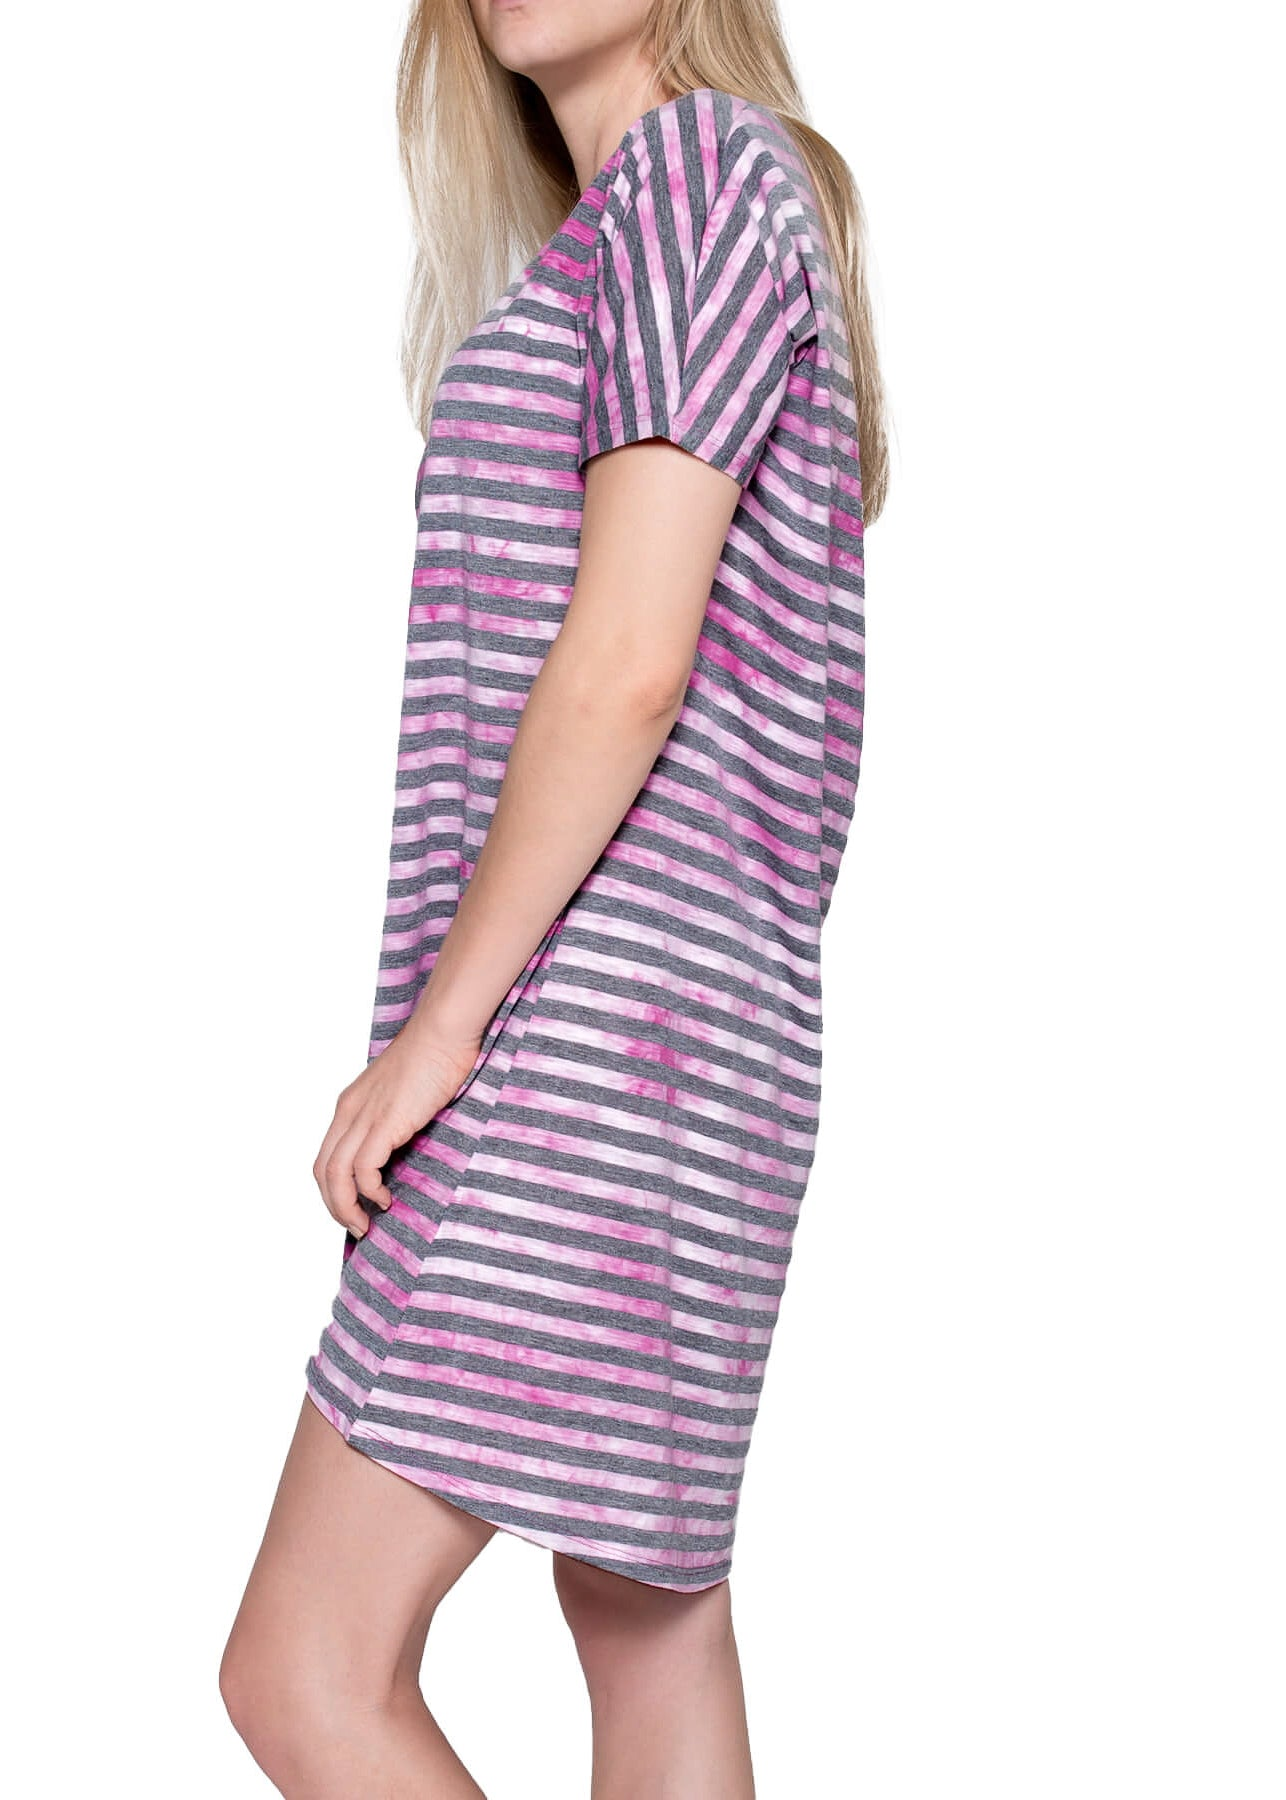 Artire Stripe Nightshirt - Rose